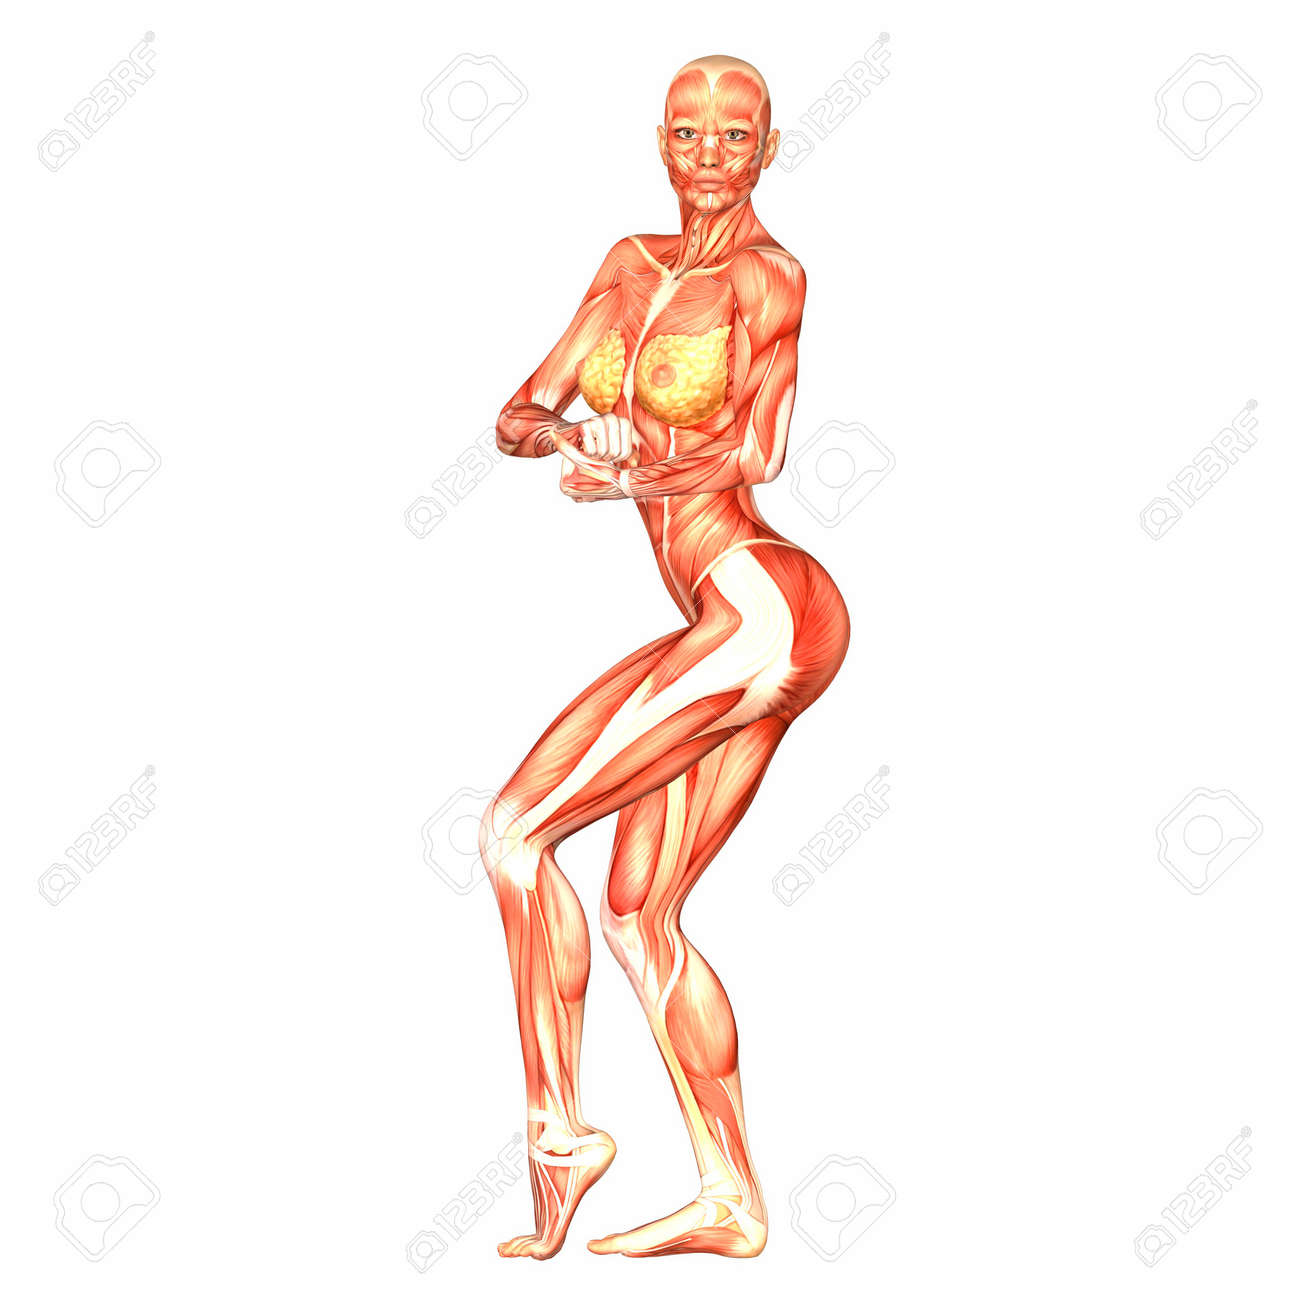 Illustration Of The Anatomy Of The Female Human Body Isolated